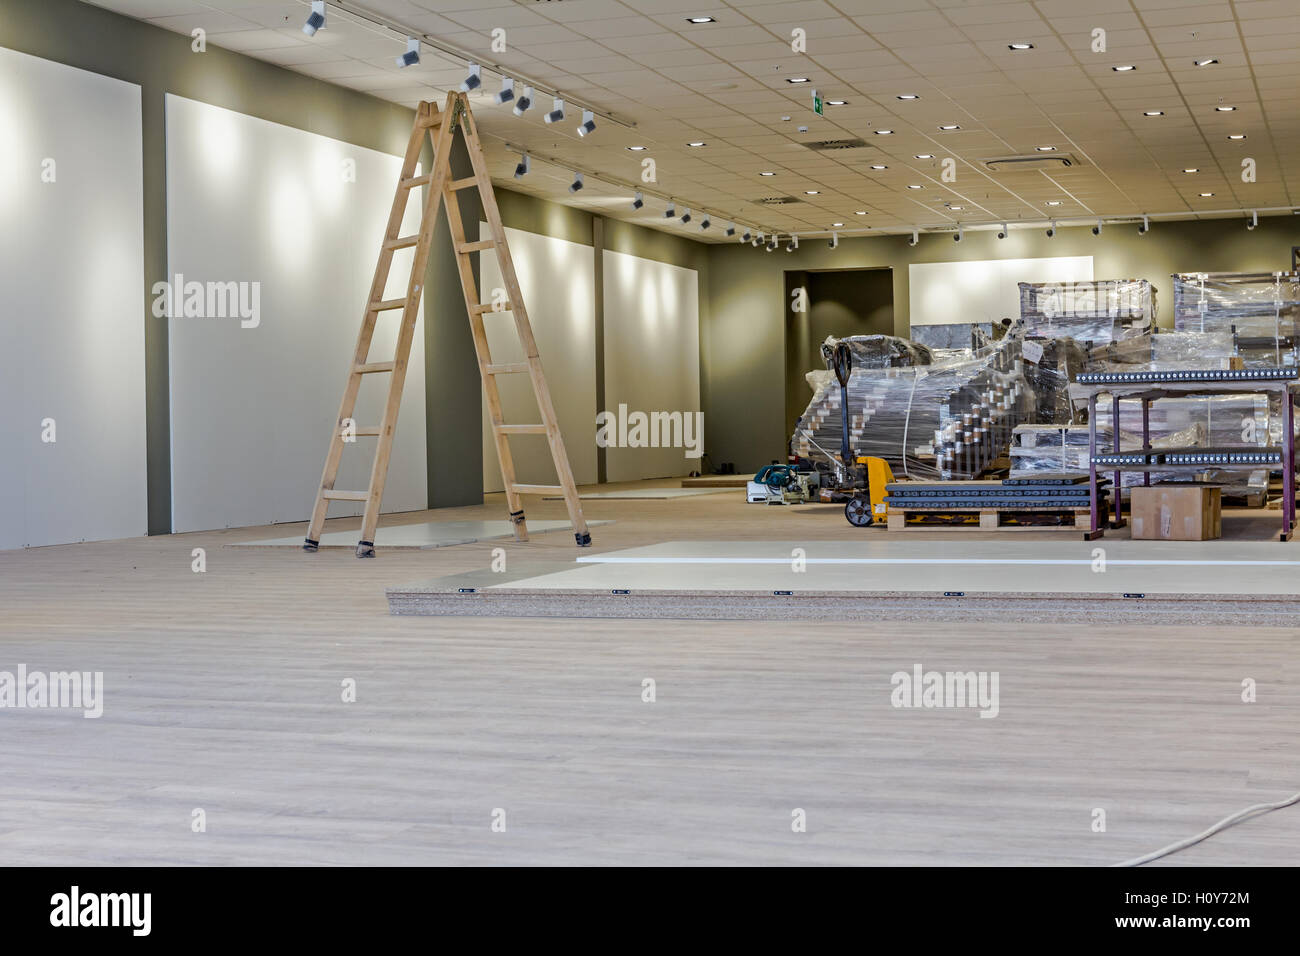 Furnishing equipment is warped in foil for finished modern large showroom with ceiling light. - Stock Image